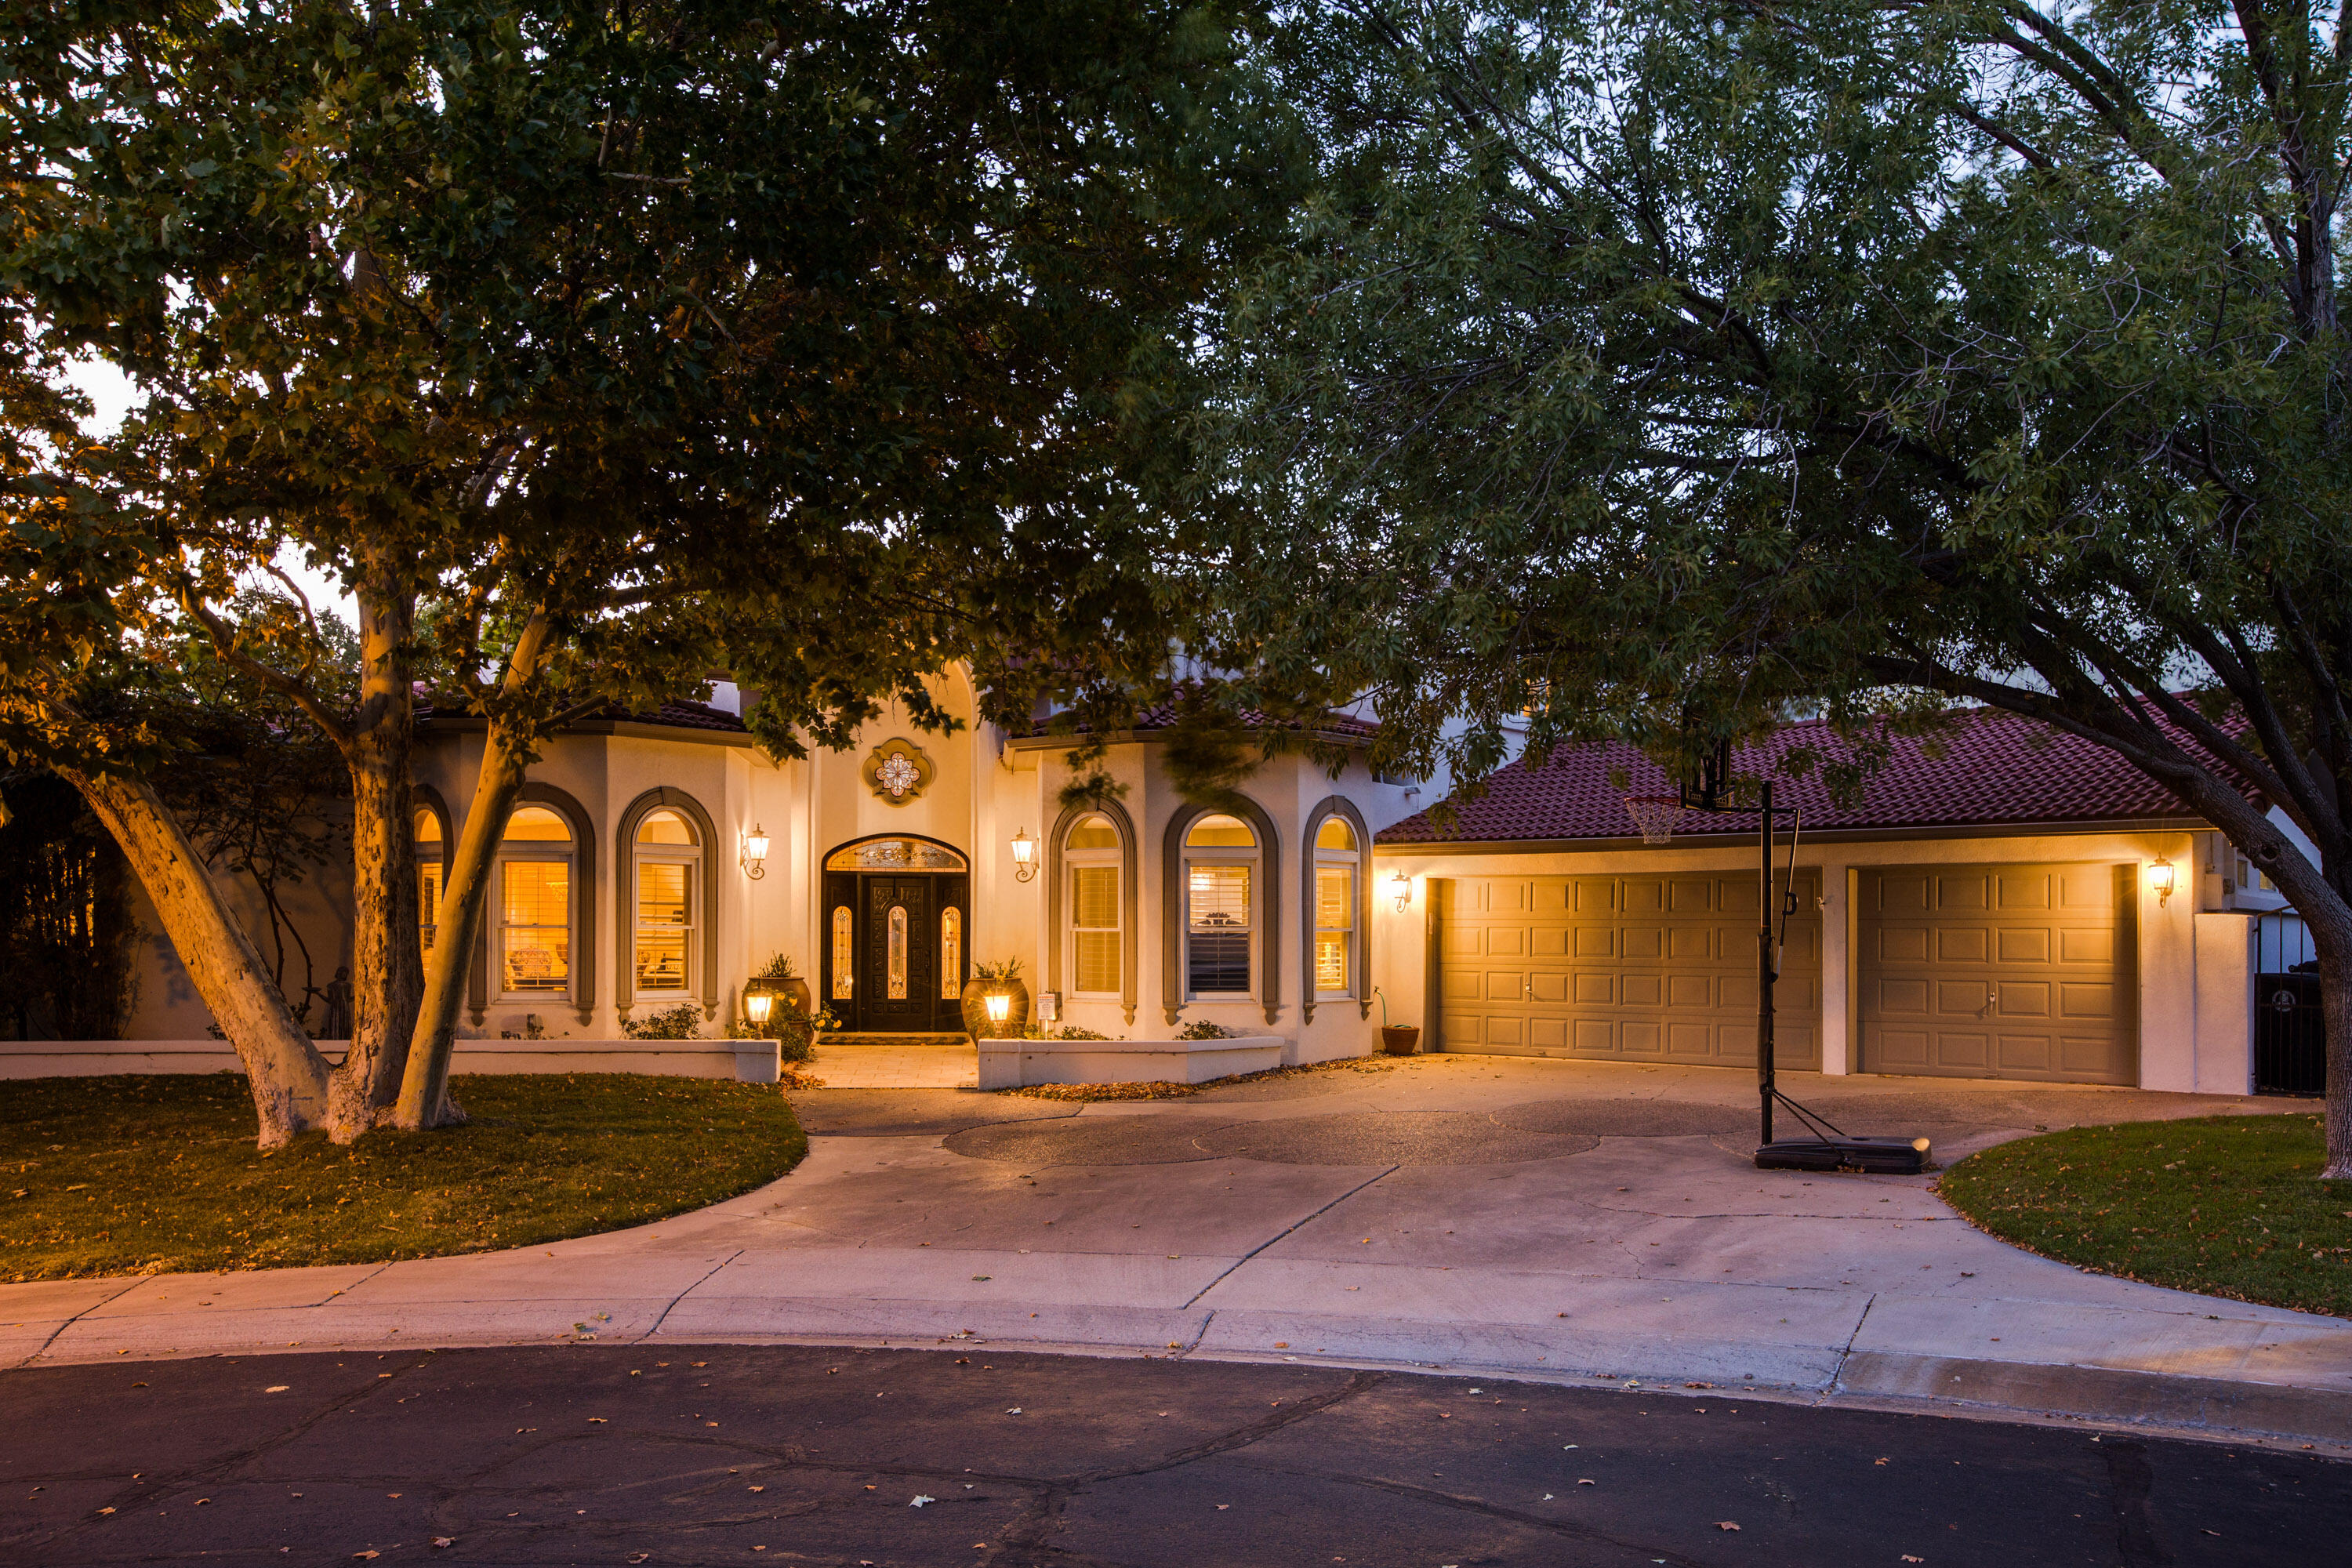 Incredible find in the 24/7 guard gated masterplanned community of Tanoan East. Enjoy the privacy and security of this great neighborhood with close proximity to the golf course, tennis courts, pool and country club. This great home features a hard to find main floor primary suite, a main floor guest suite with an en-suite bath, a huge great room, a nicely appointed kitchen with a breakfast nook, a pool cabana room with a bathroom and access to the  back patio, and an upstairs family room with 2 more bedrooms and another bathroom. The resort like backyard features a large pool, covered and open patios, and 2 huge side yards with grass for the kids to play! This home is nestled in a quiet cut-de-sac, and also features a 3 car garage with additional storage. What a rare find!